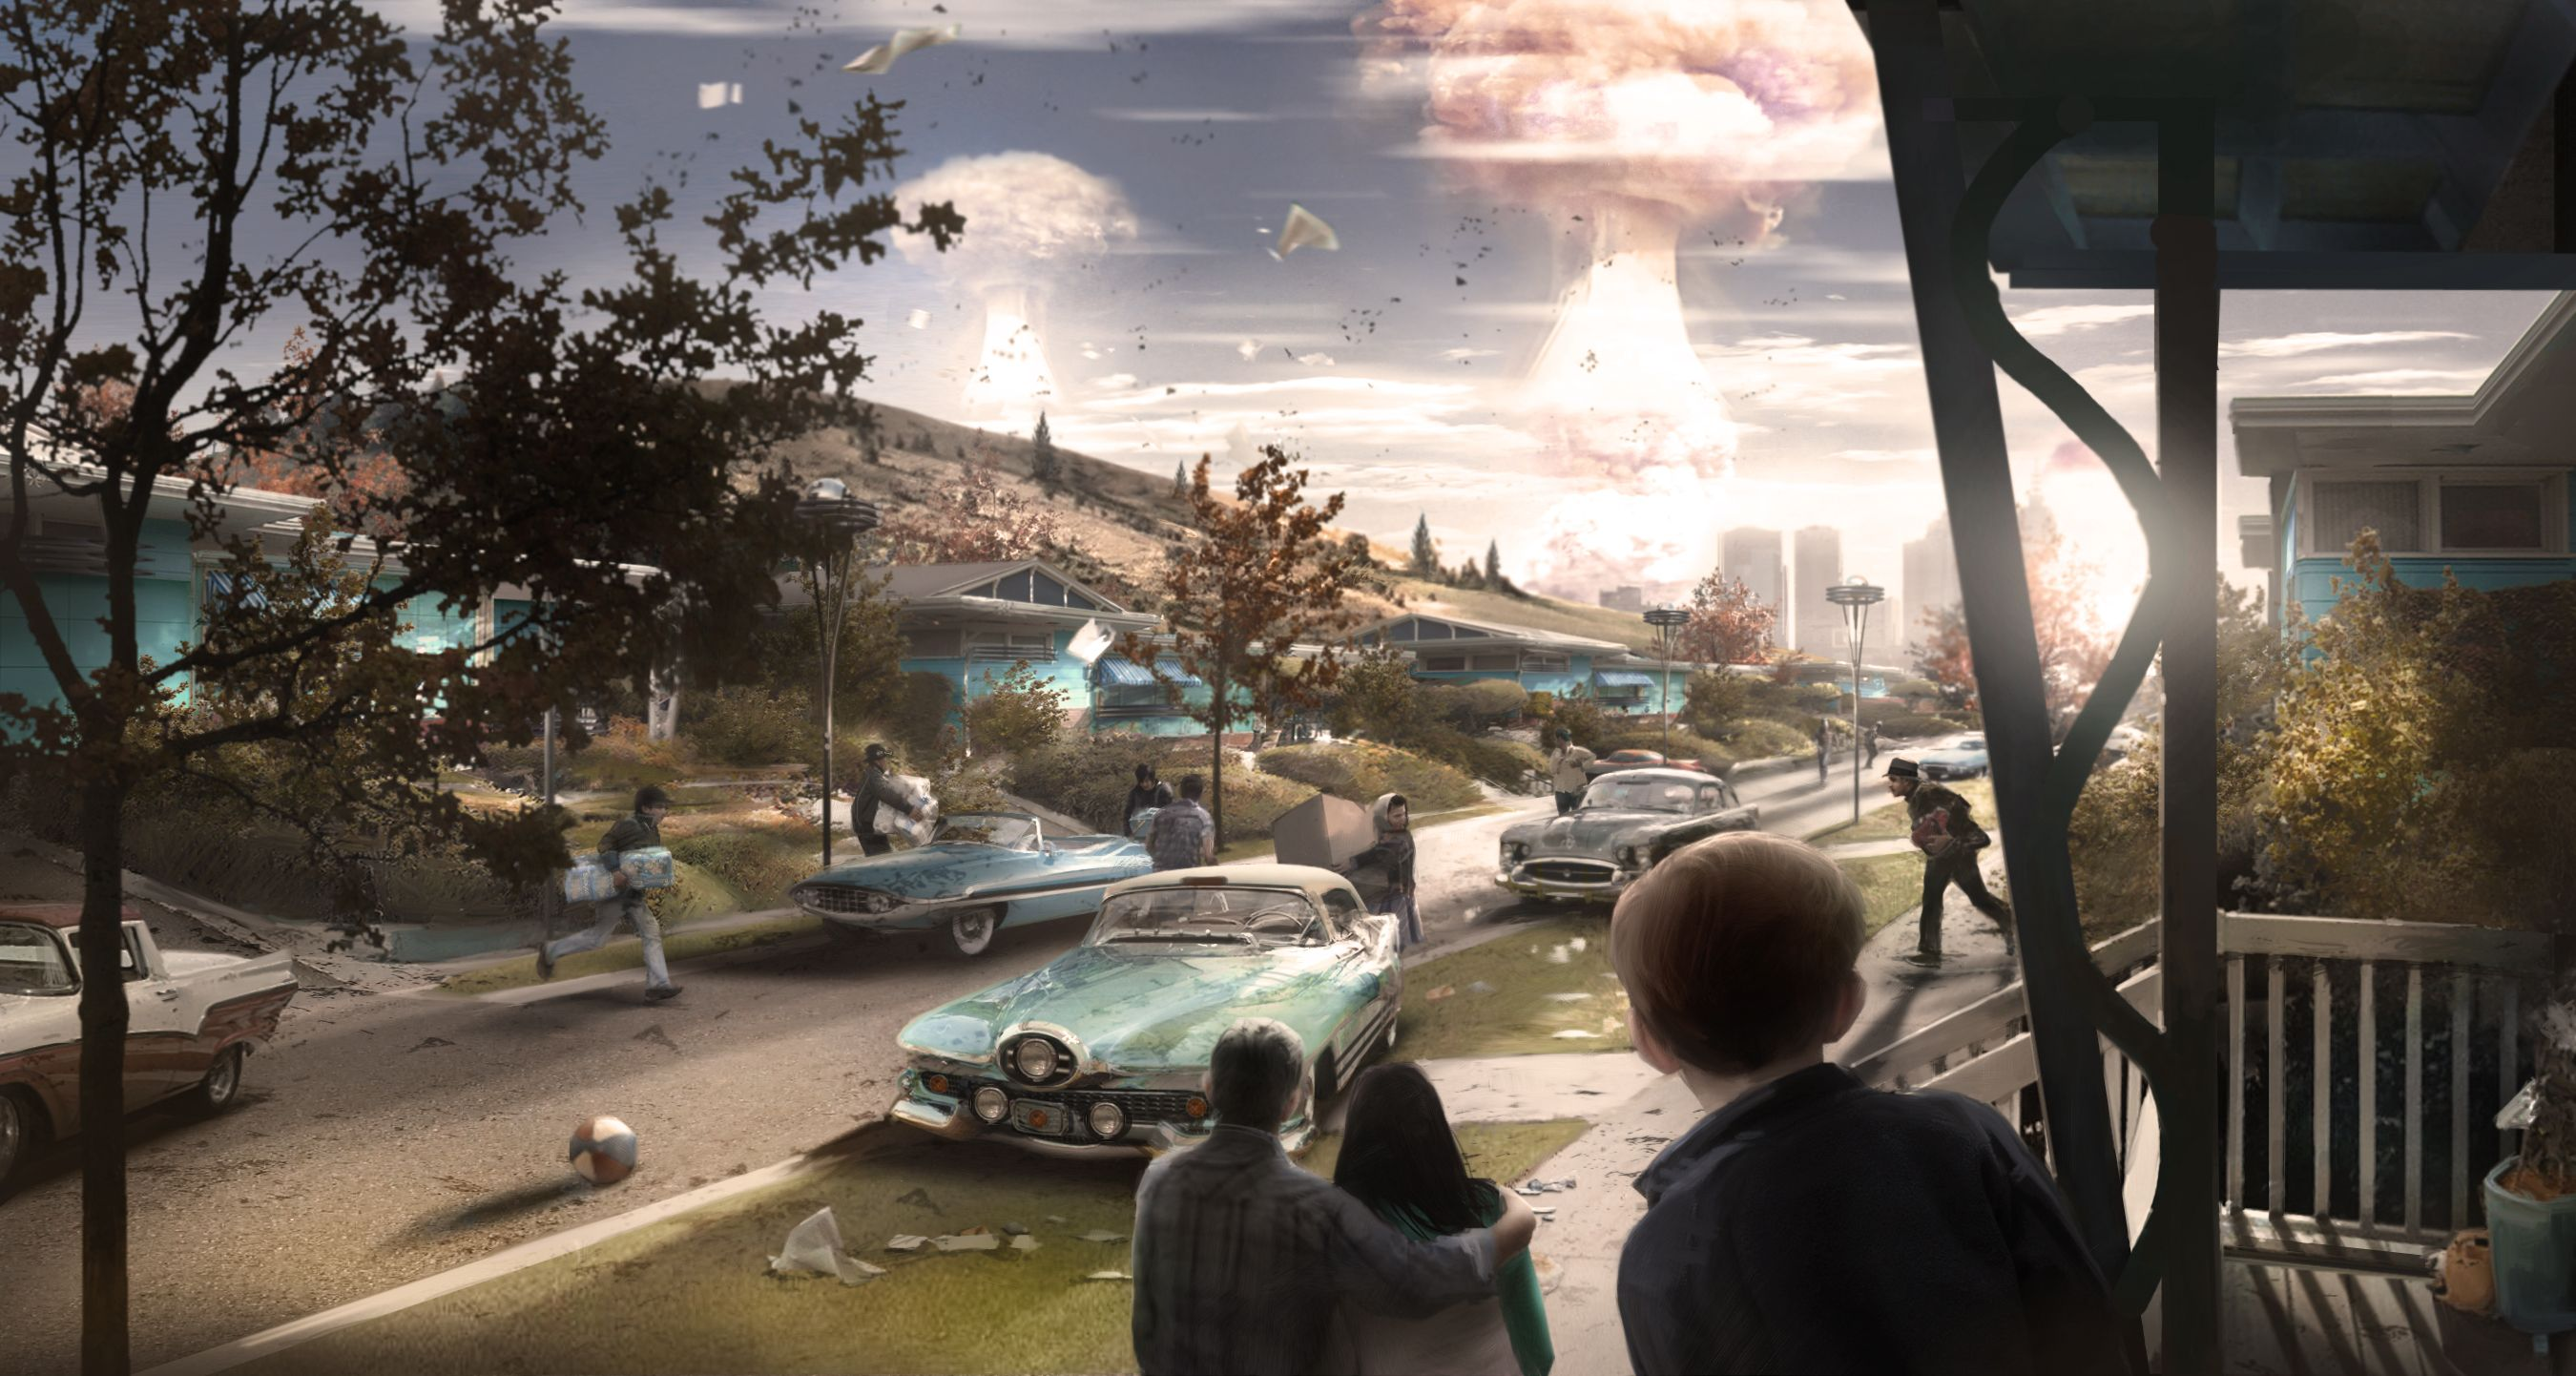 Fallout 4 Gets 7 Minutes of Leaked Gameplay Footage from Gamescom.